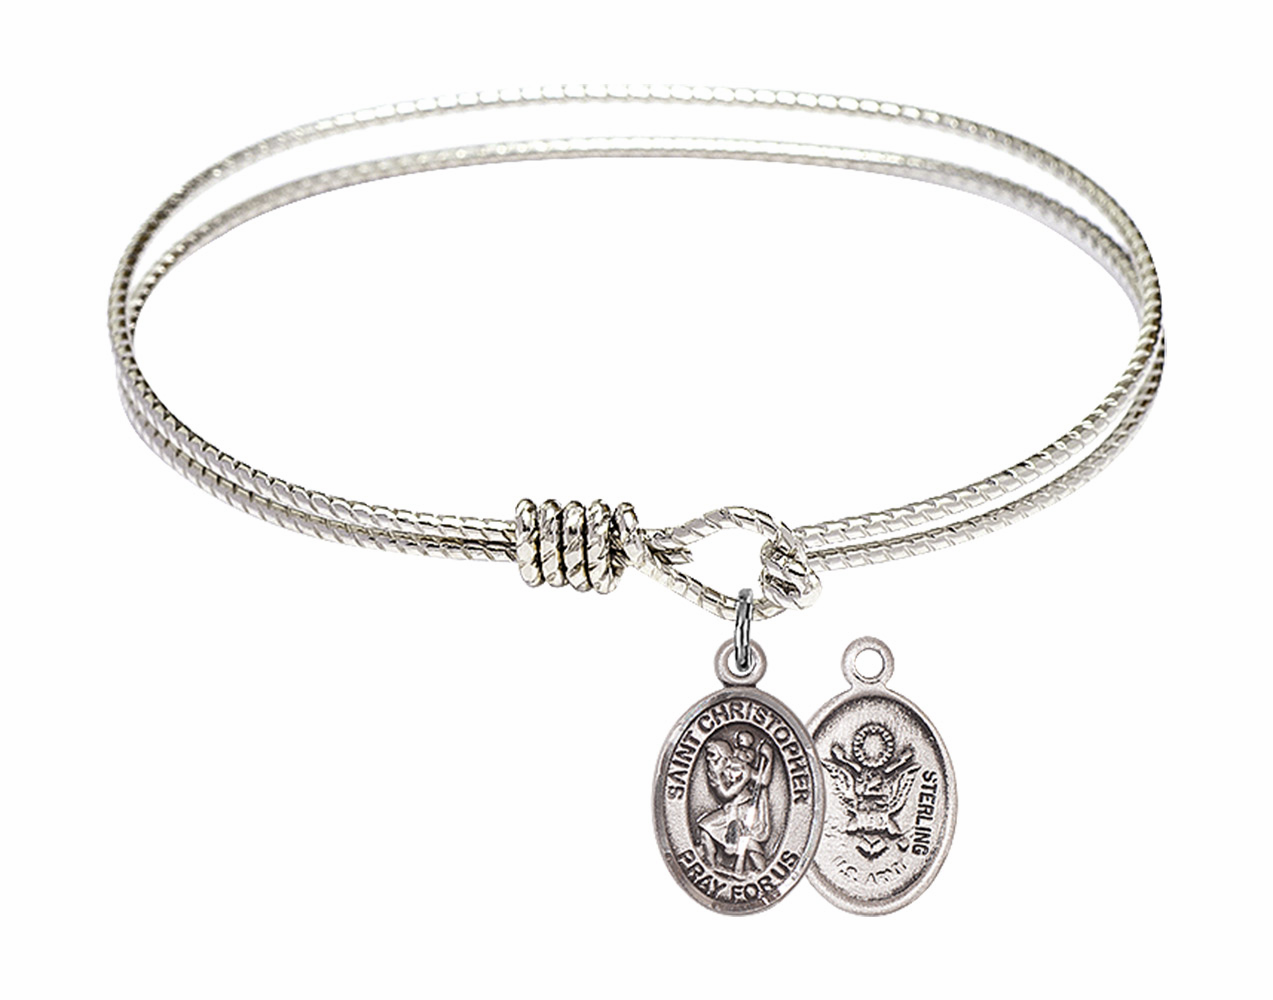 Round Loop St Christopher Army Bangle Sterling Silver Charm  Bracelet by Bliss